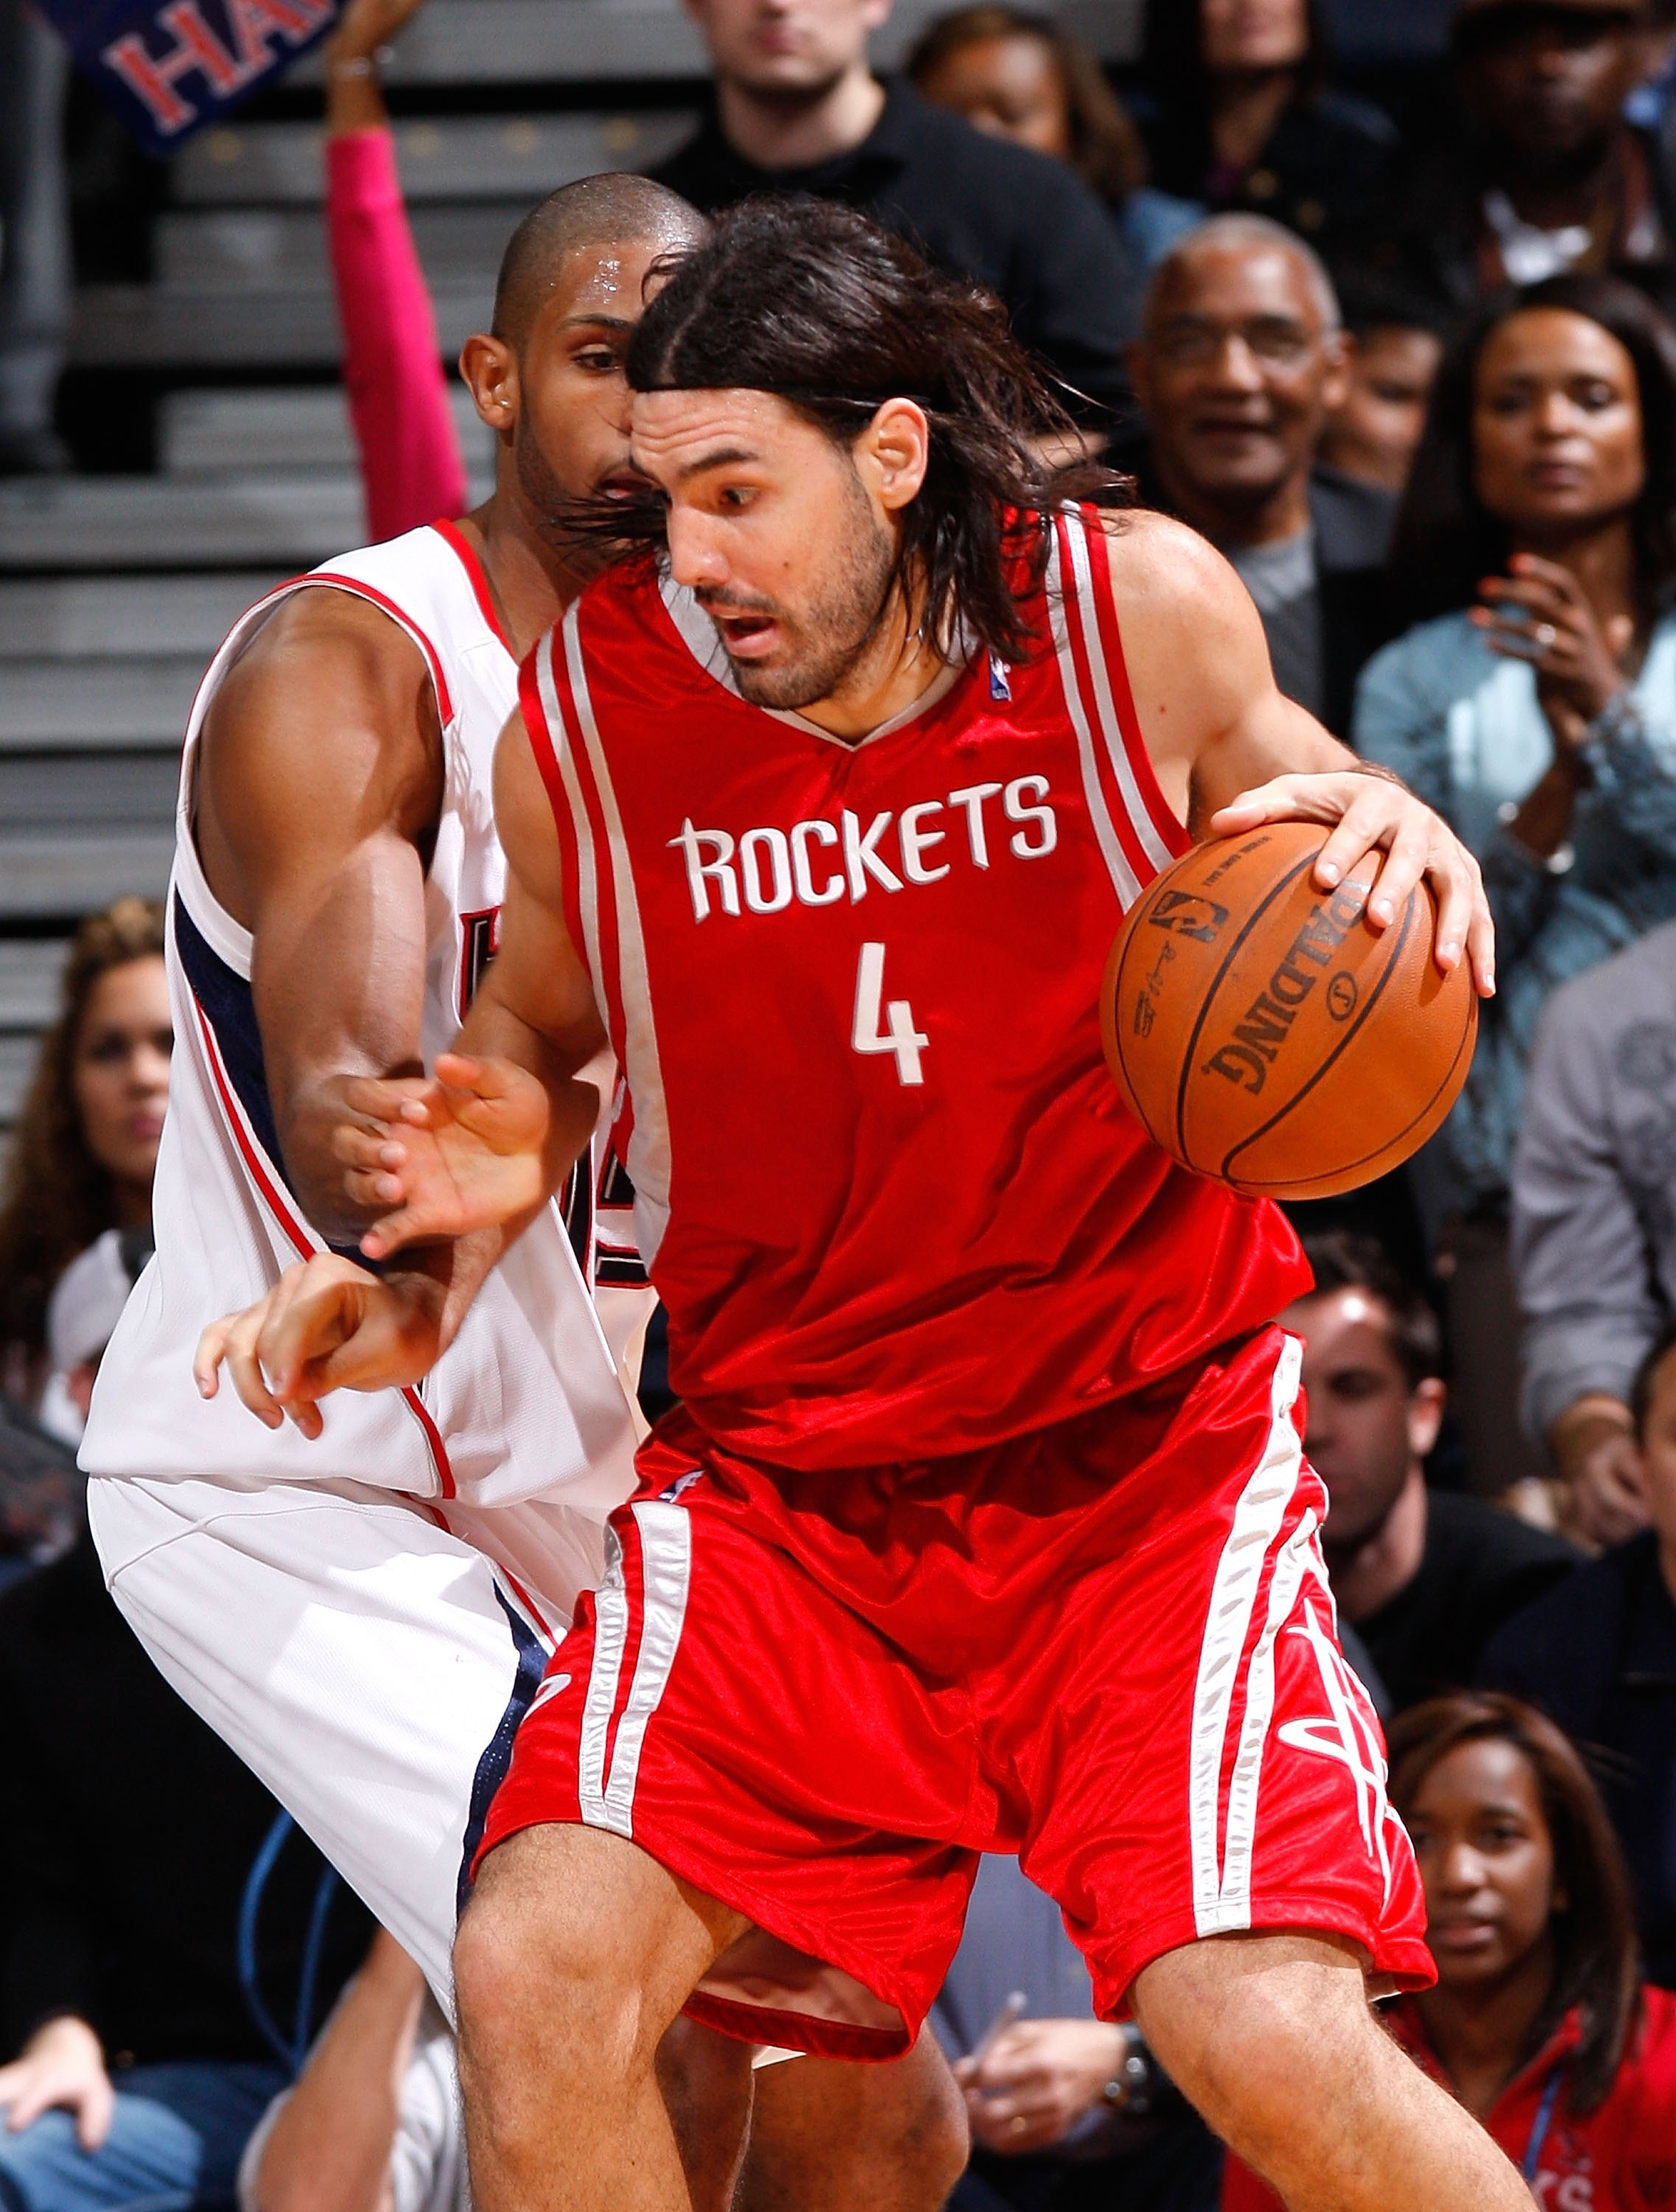 ATLANTA - NOVEMBER 20:  Luis Scola #4 of the Houston Rockets against Al Horford #15 of the Atlanta Hawks at Philips Arena on November 20, 2009 in Atlanta, Georgia.  NOTE TO USER: User expressly acknowledges and agrees that, by downloading and/or using thi